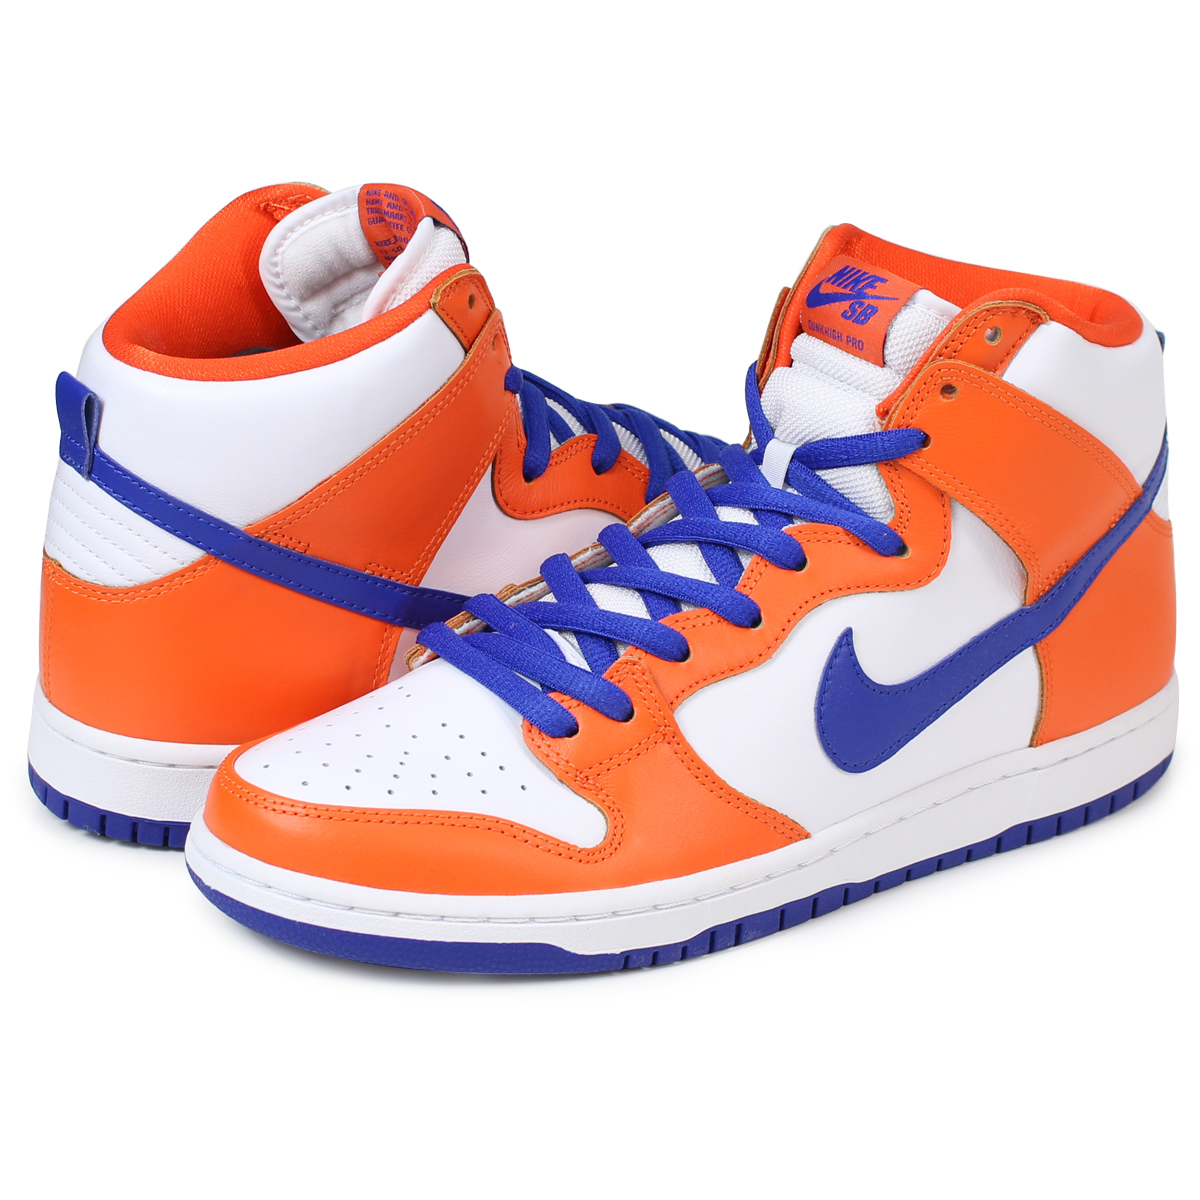 low priced ba55d 495ab An NIKE SB DUNK HIGH TRD QS DANNY SUPA Nike dunk high sneakers AH0471-841  men shoes orange  load planned Shinnyu load in reservation product 12 6 ...